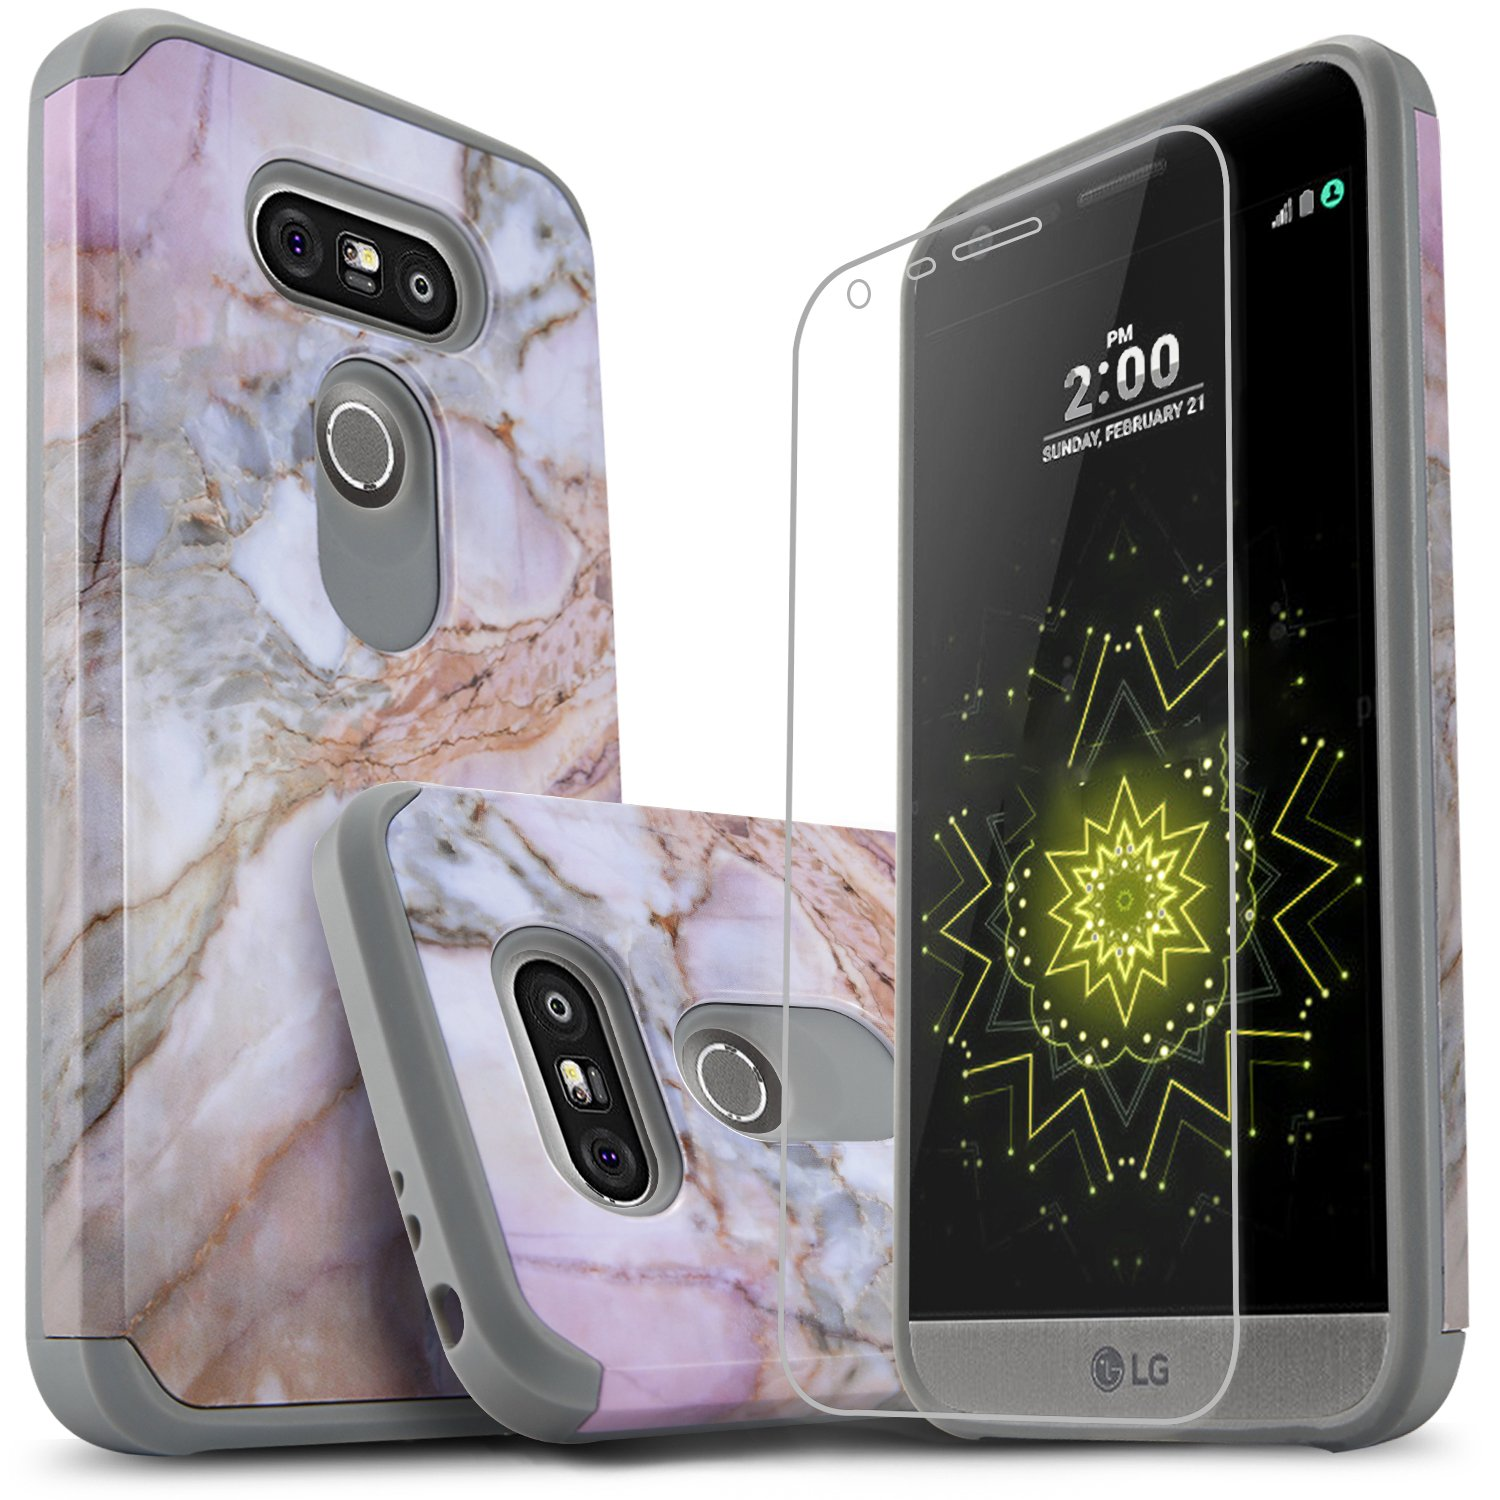 LG G5 Case, Starshop [Shock Absorption] Dual Layers Impact Advanced Protective Phone Cover with [Premium HD Screen Protector Included] for LG G5 (Marble Pattern)